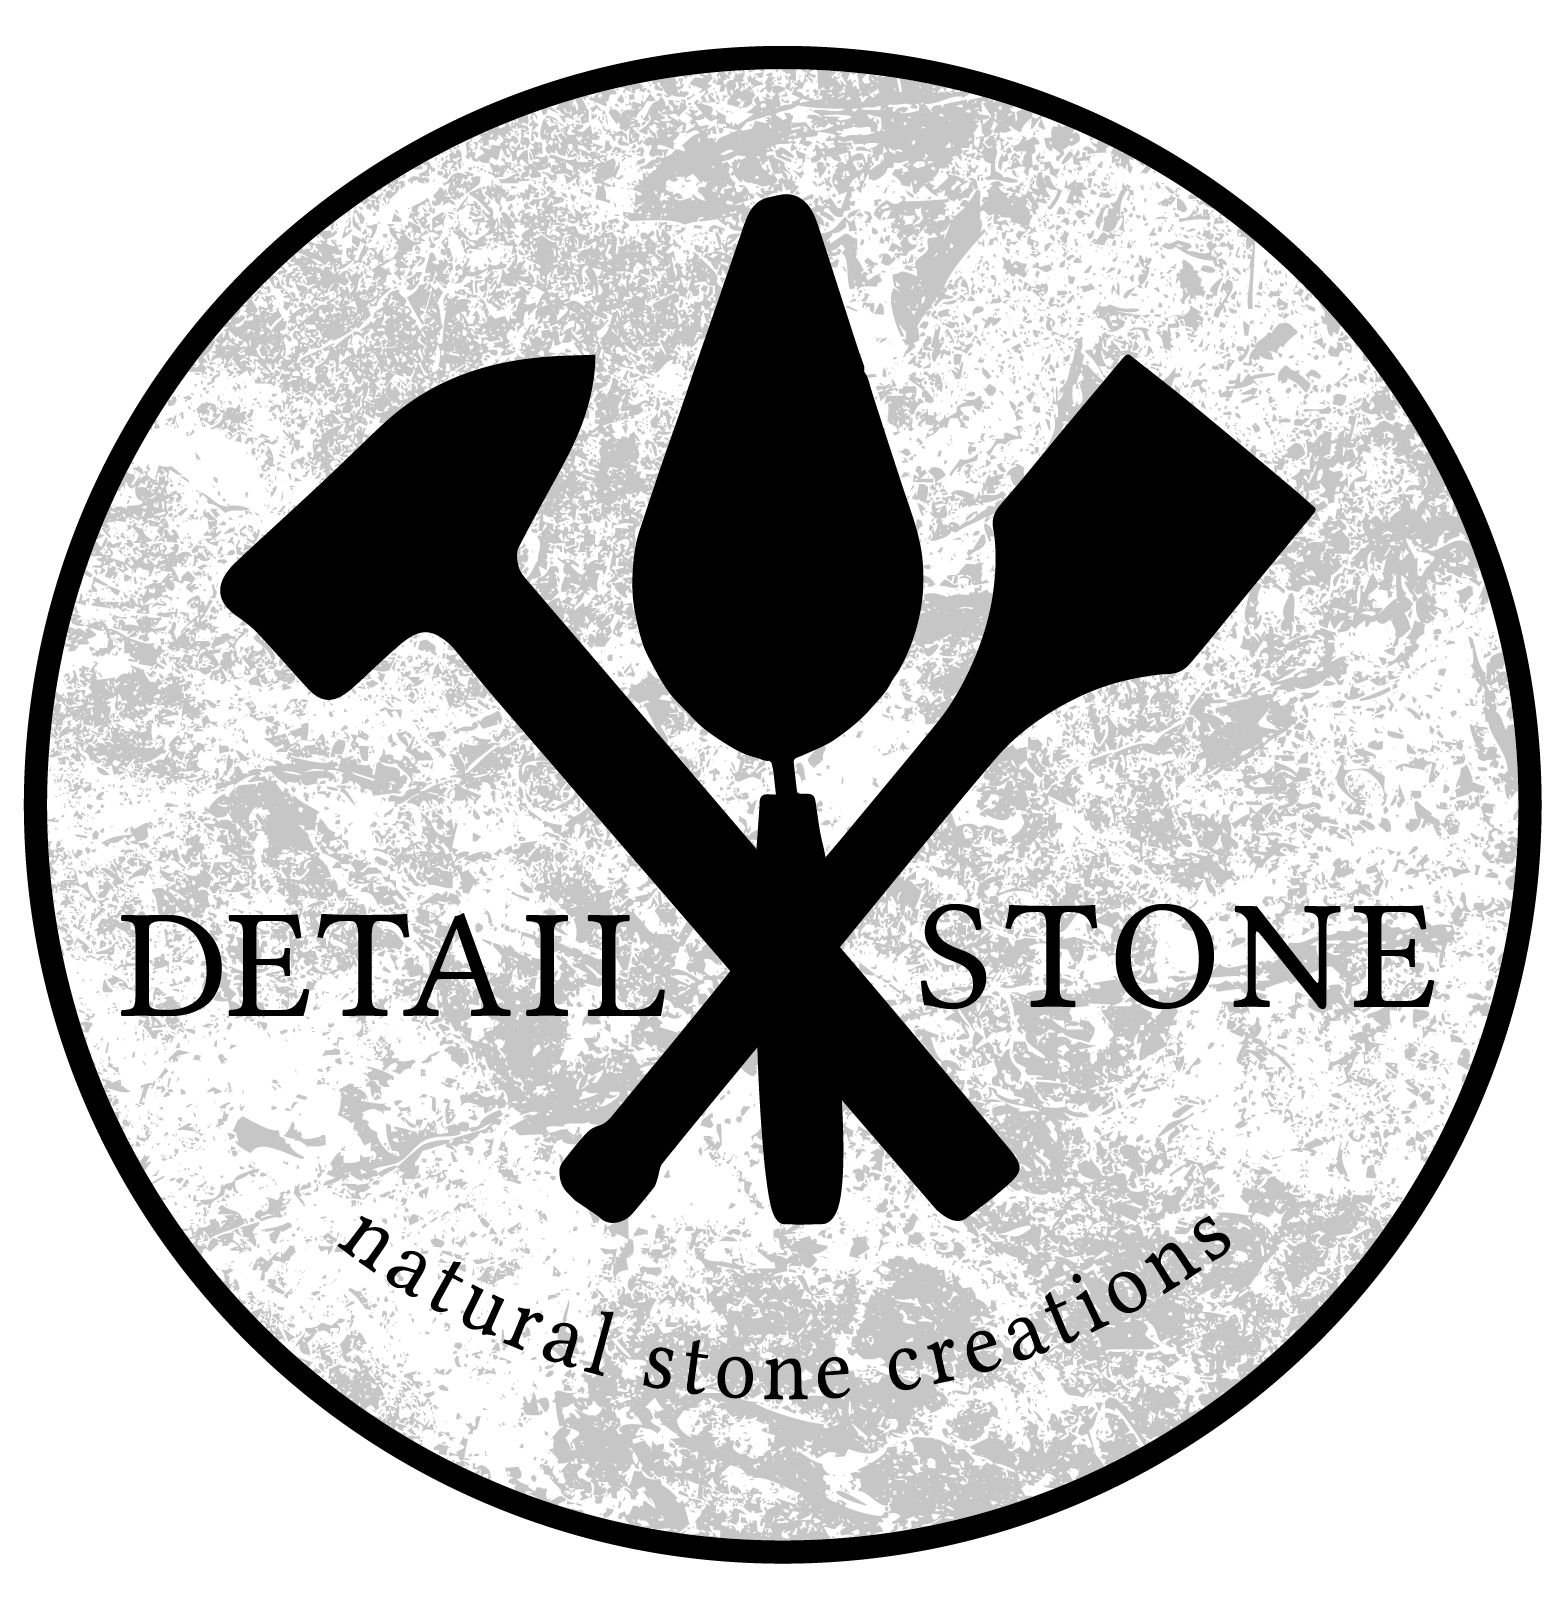 Employment Opportunities Stone Mason Detail Stone